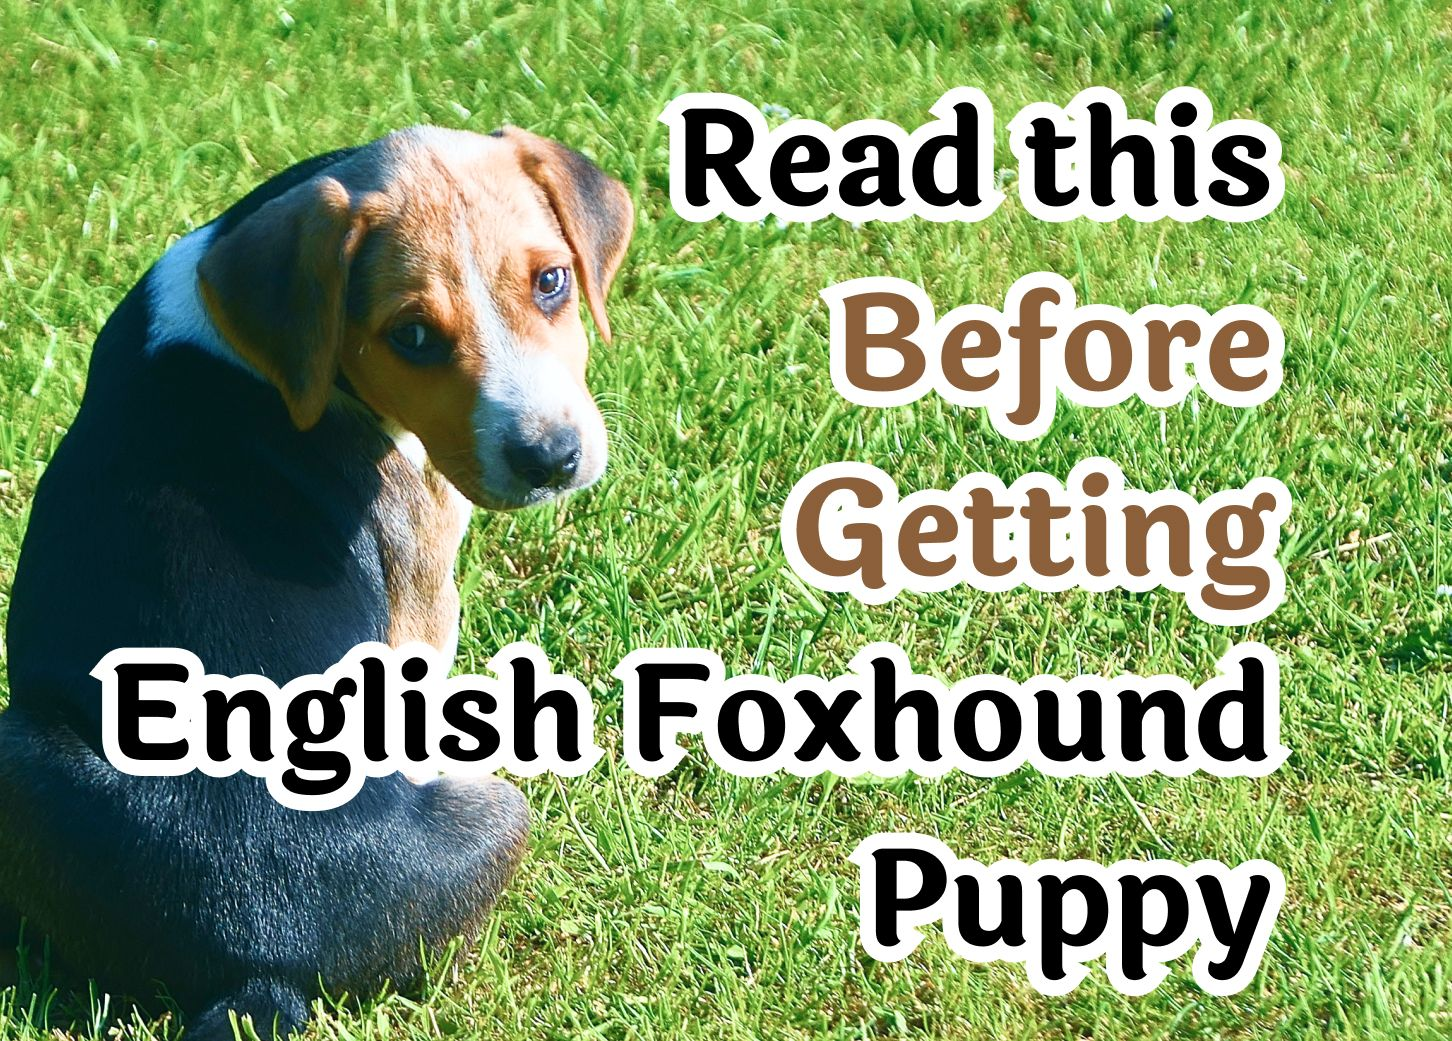 25 Questions to Consider Before Getting An English Foxhound